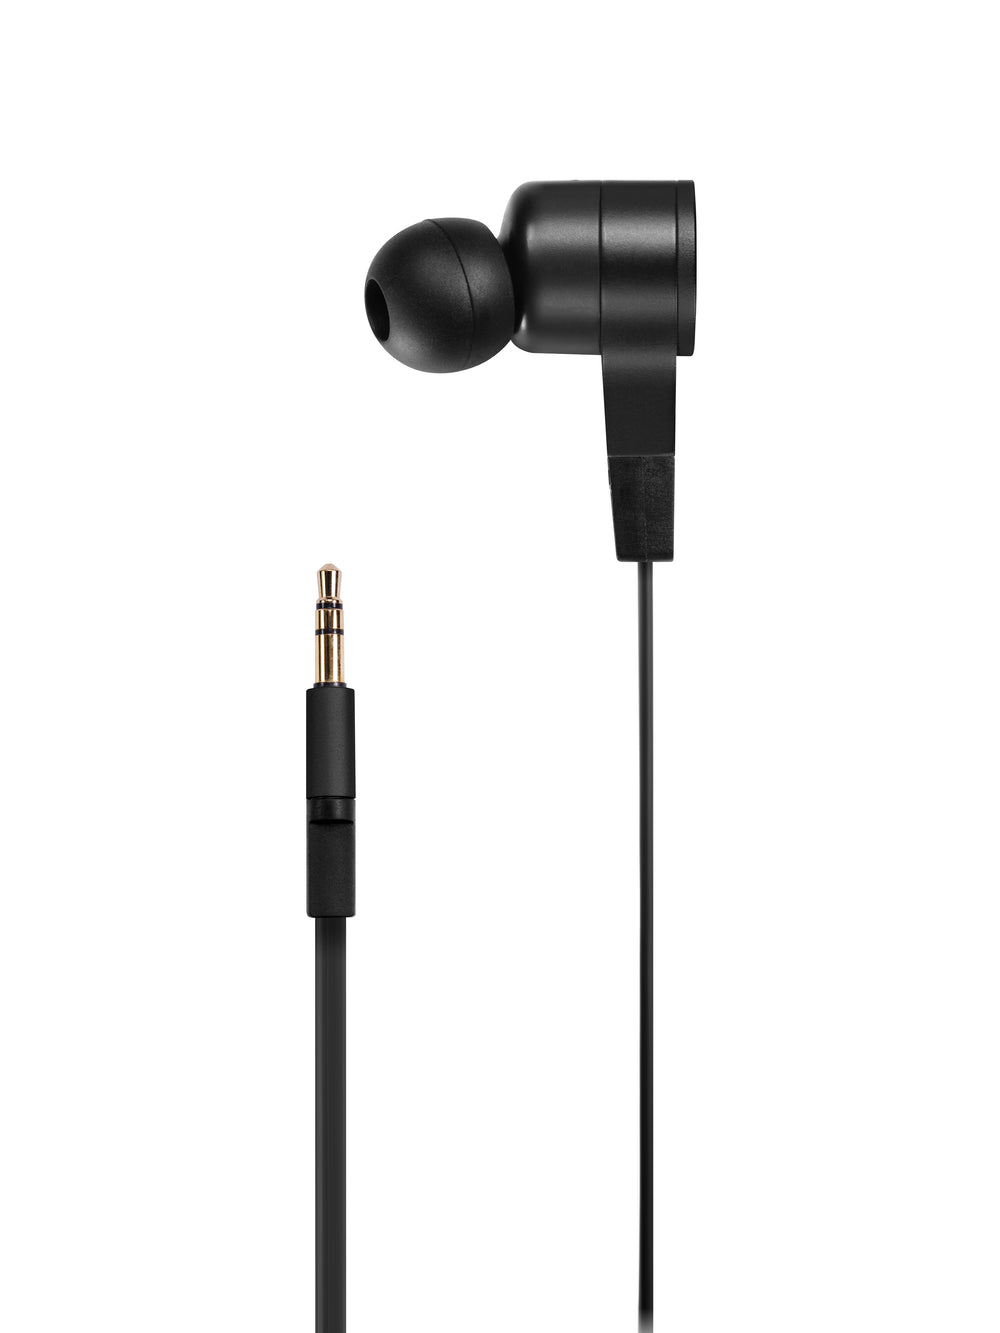 KEF Porsche Design Bluetooth In-Ear Earphones.